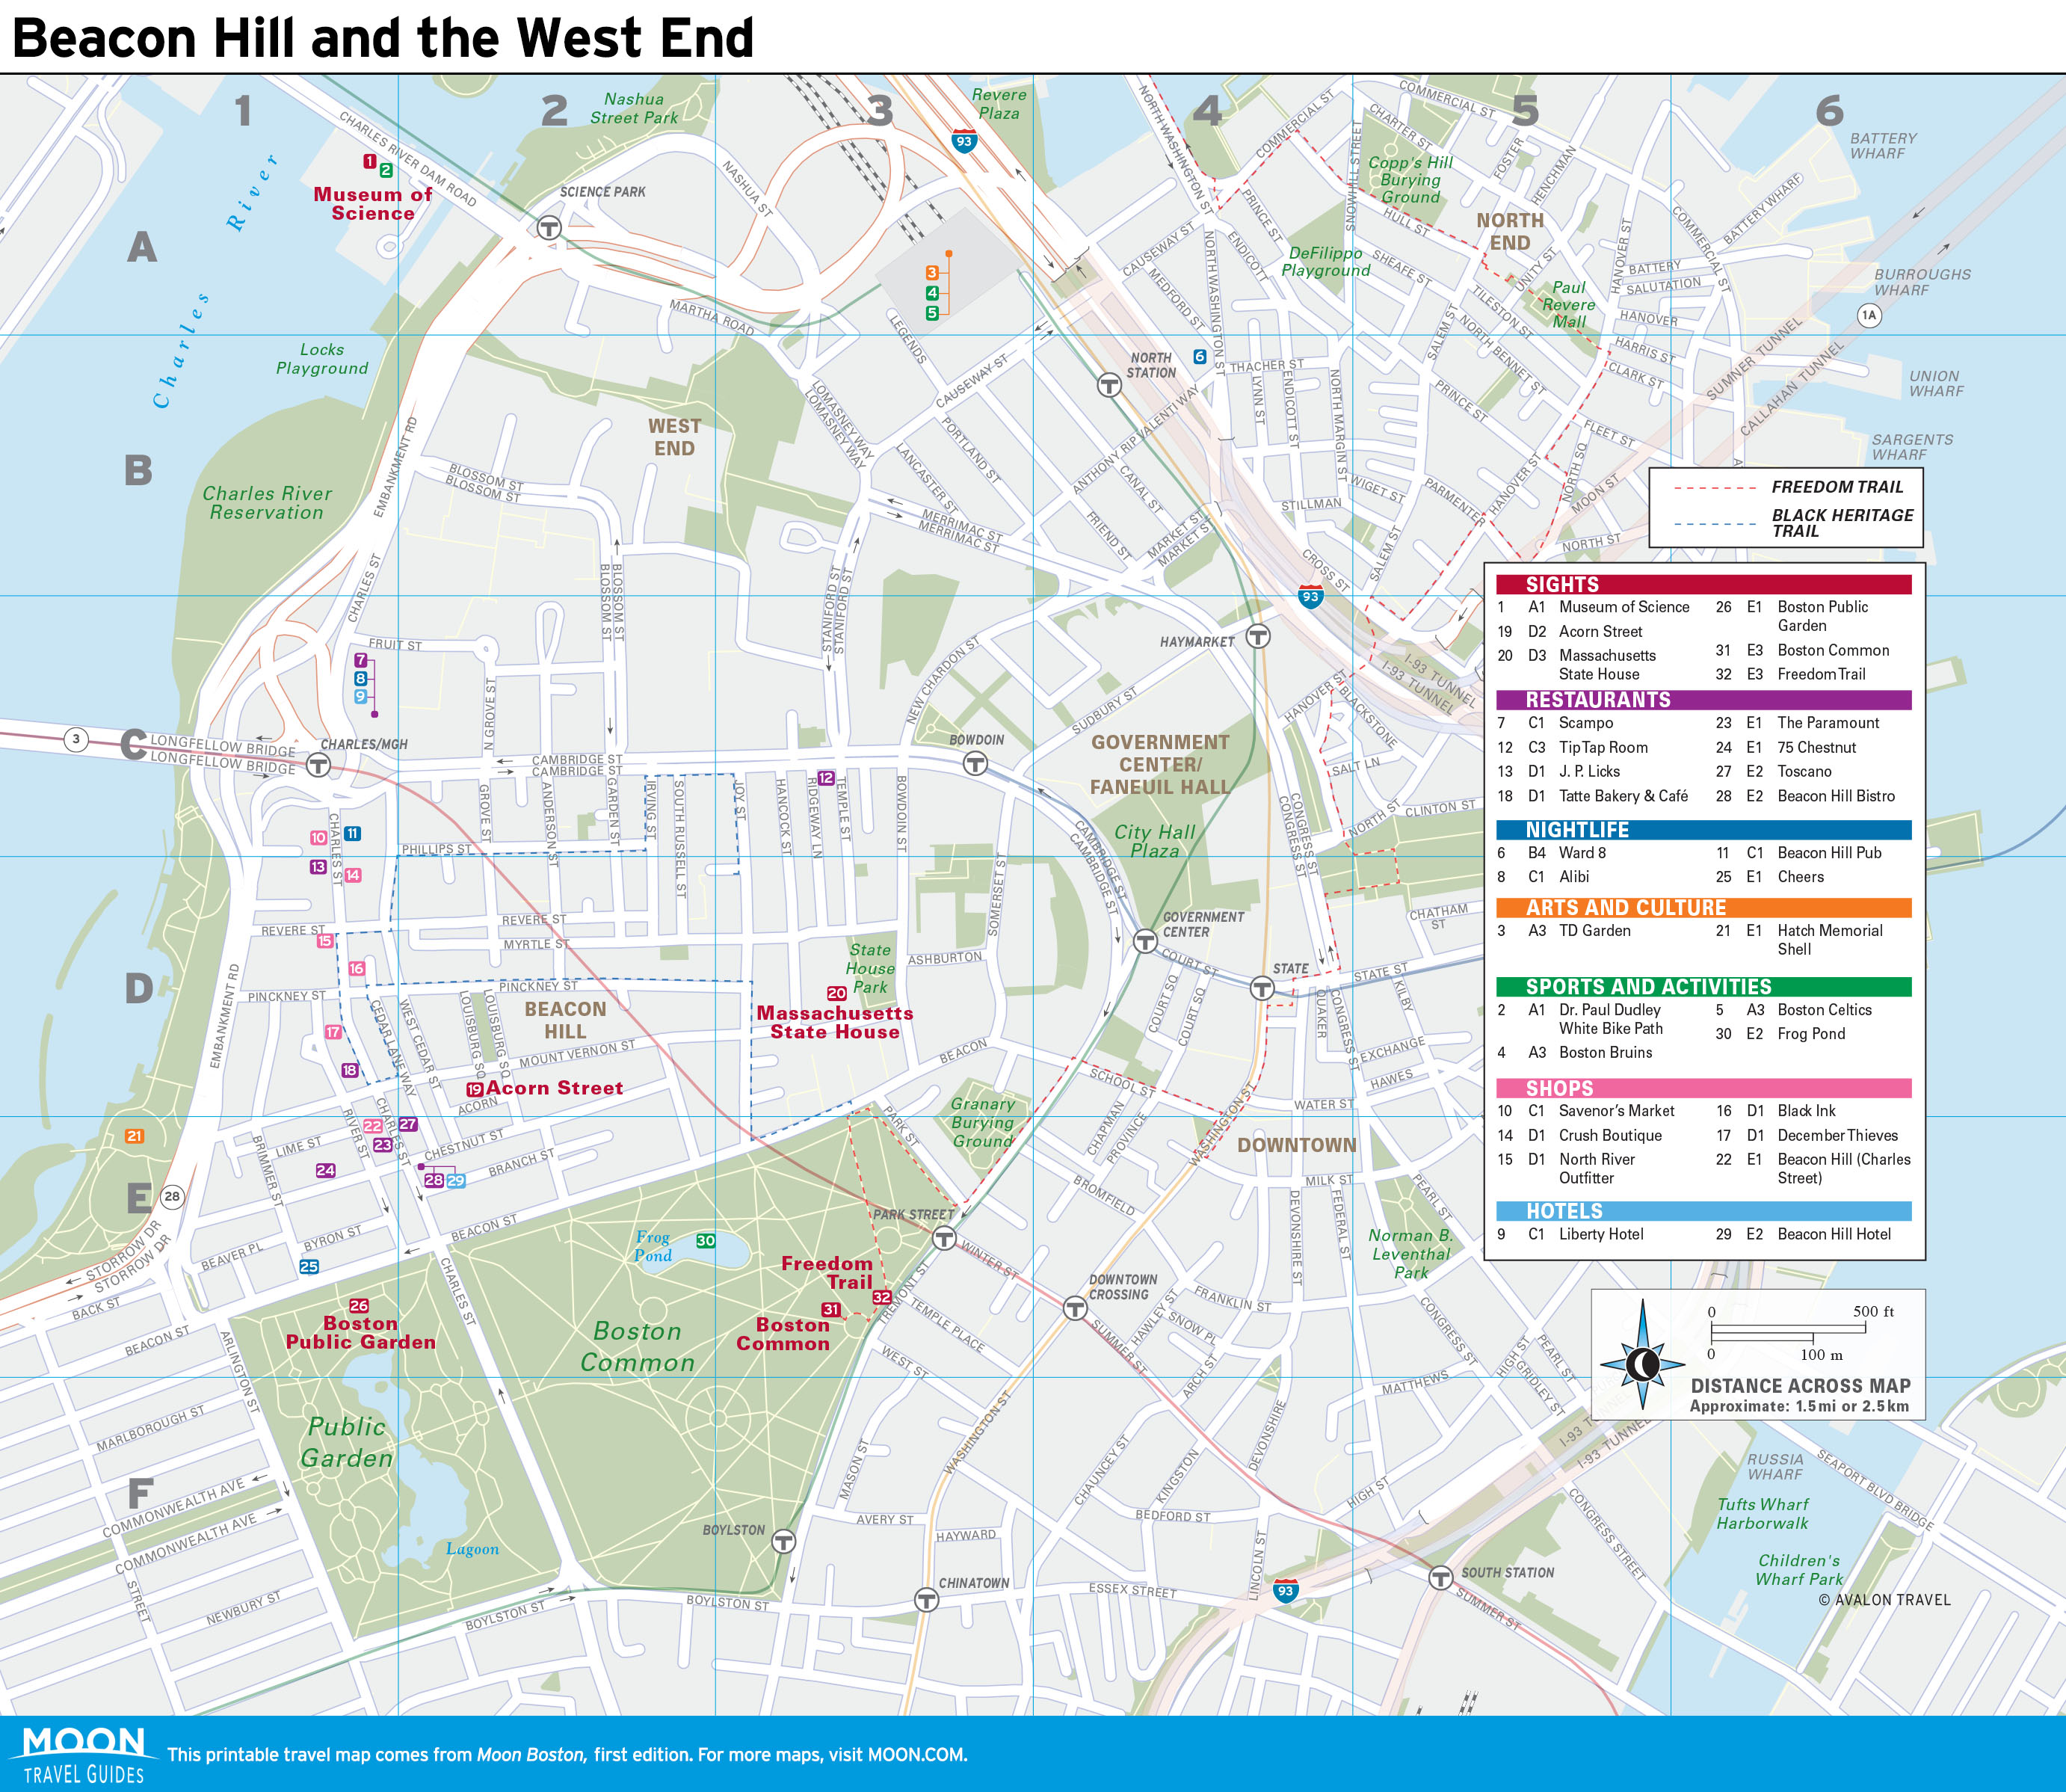 Freedom Trail Boston Map Walk the Freedom Trail on a Self Guided Tour | Moon Travel Guides